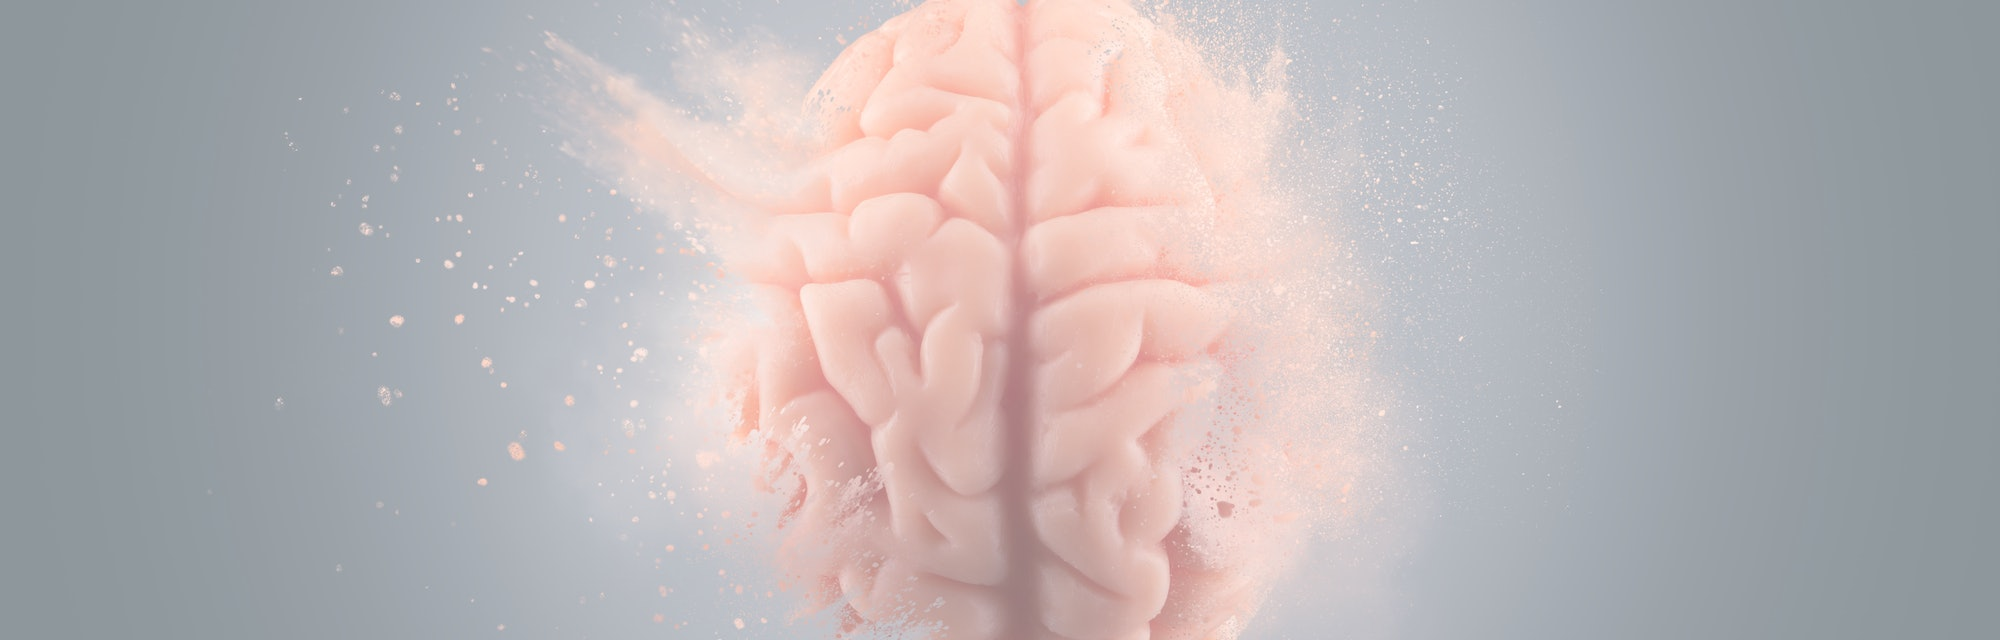 Human brain floating on a gray background. mind blown concept